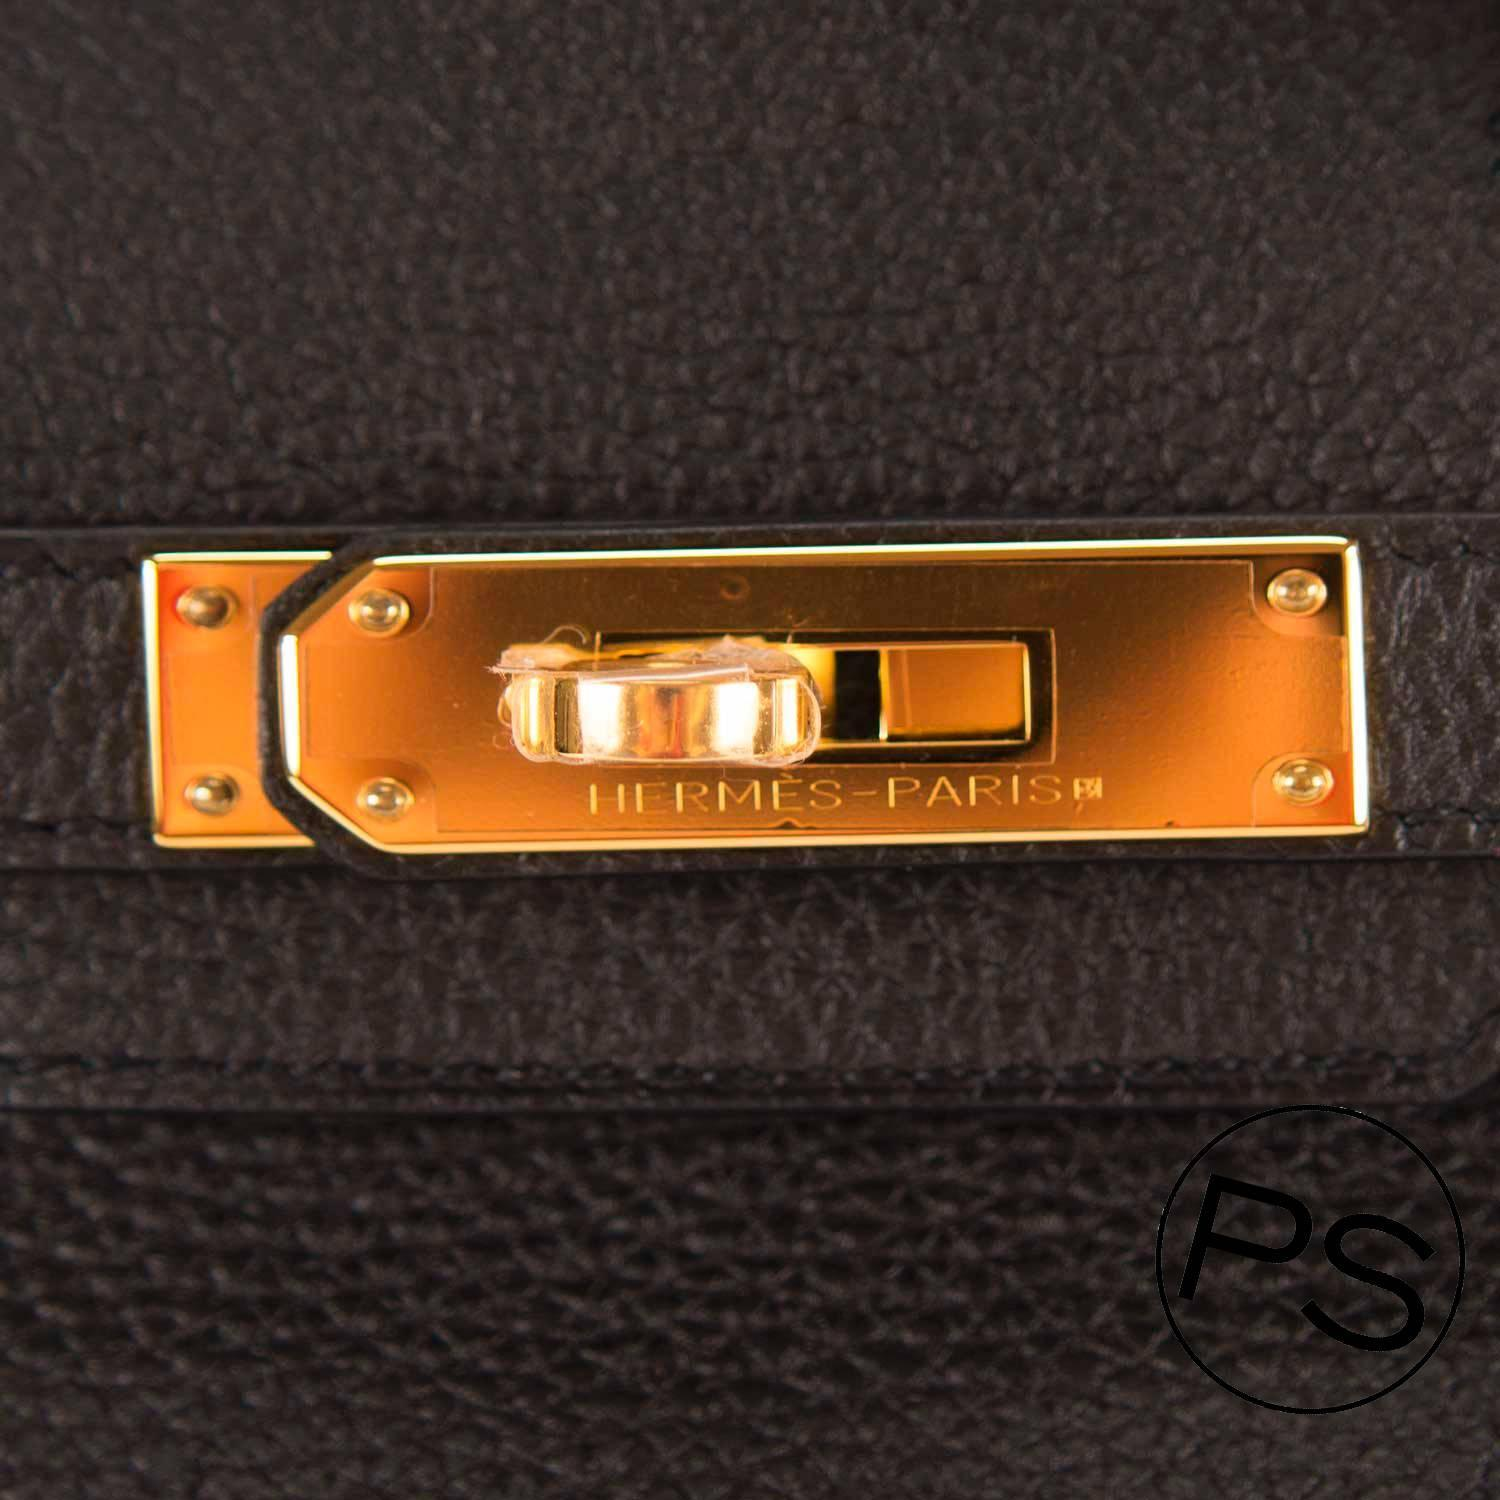 hermes paris wallets - hermes rose sakura swift 25cm kelly bag with gold hardware, hermes ...